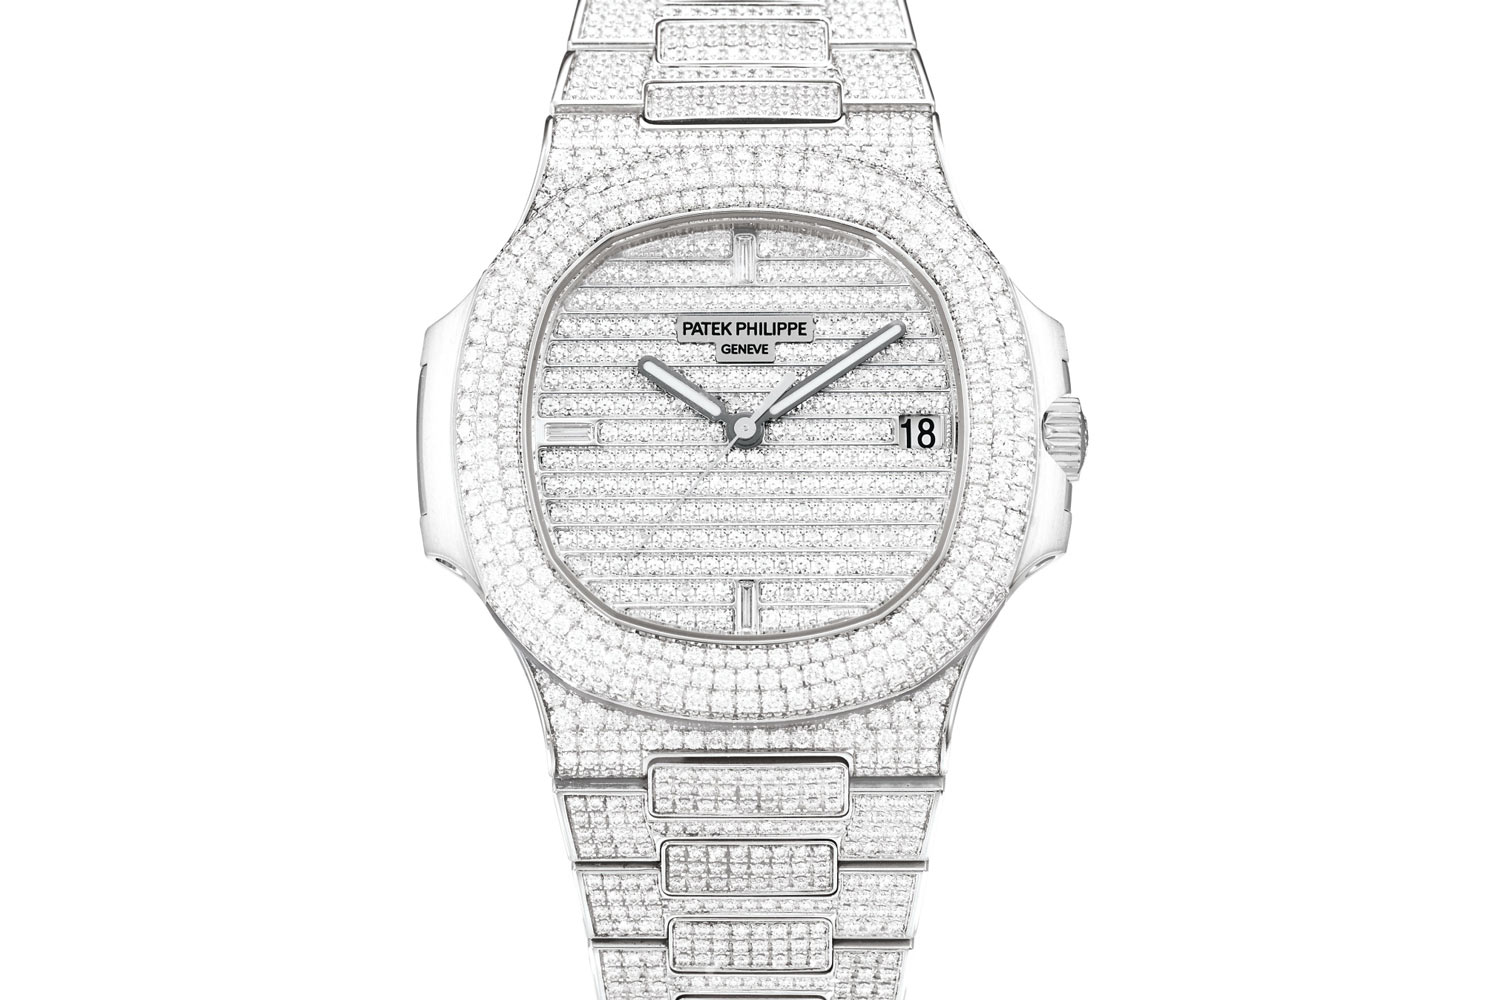 Lot 487: Patek Philippe Nautilus Ref. 5719/1G-001. White gold and diamond-set wristwatch with date and bracelet, circa 2016